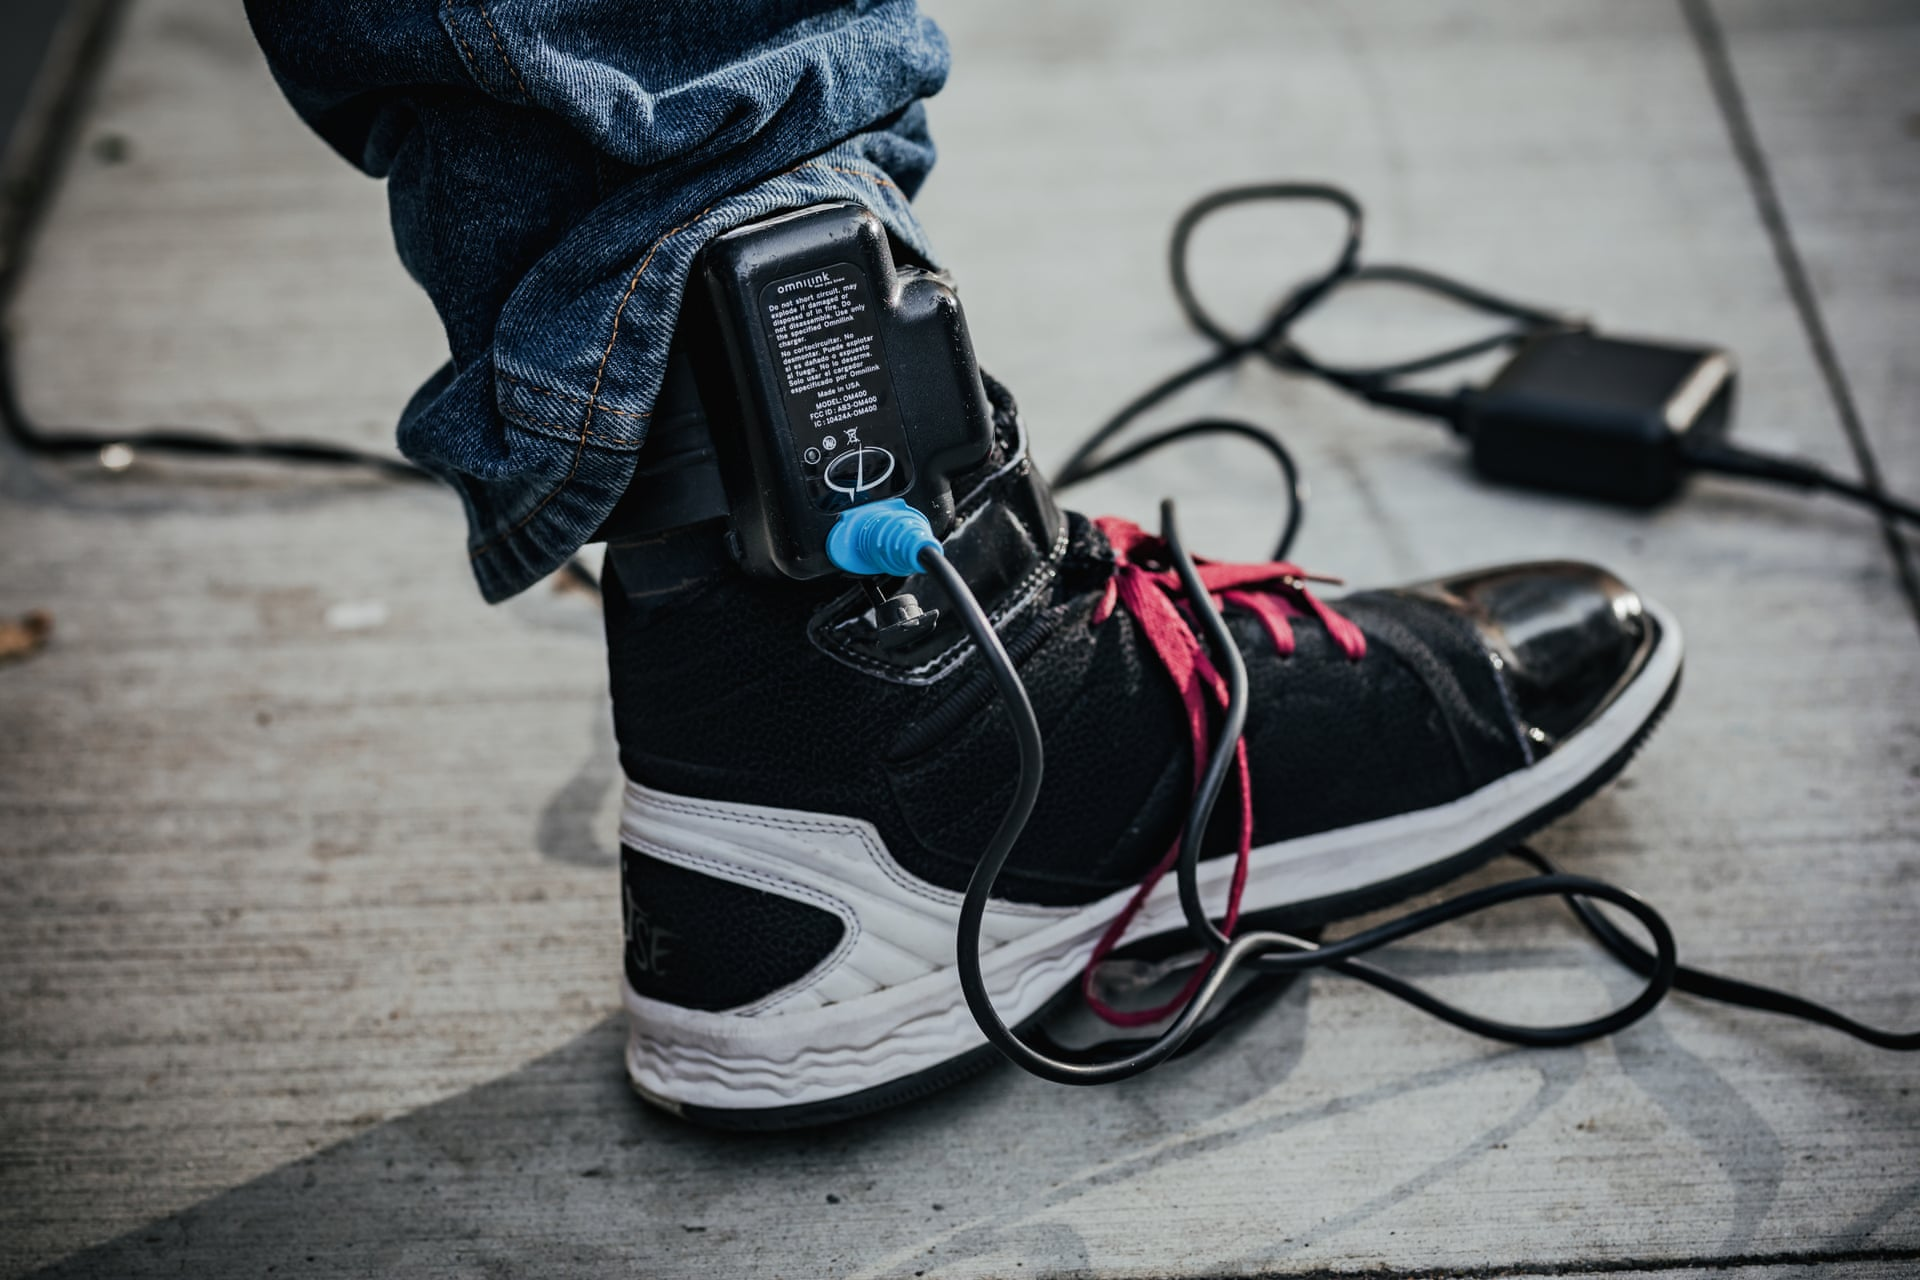 'Digital shackles': the unexpected cruelty of ankle monitors - The use of GPS monitors to track offenders is on the rise in the US. But wearers say it amounts to a new form of imprisonmentThe Guardian, August 2018